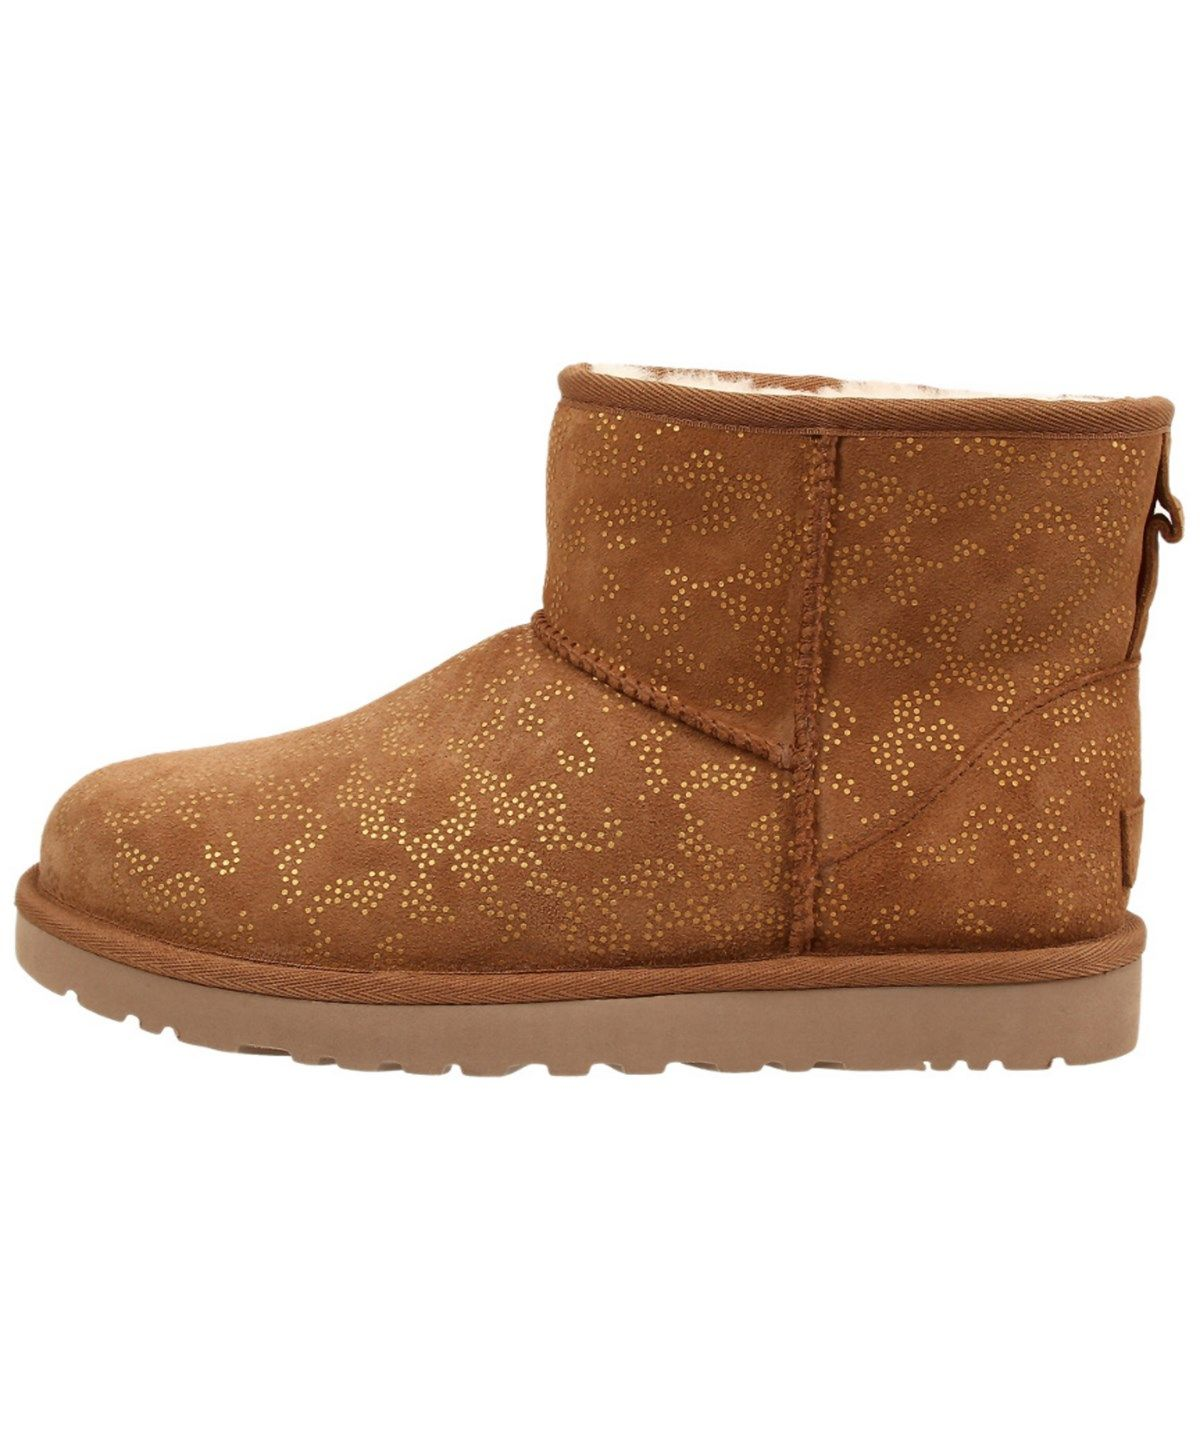 ugg classic mini metallic conifer twinface sheepskin boot